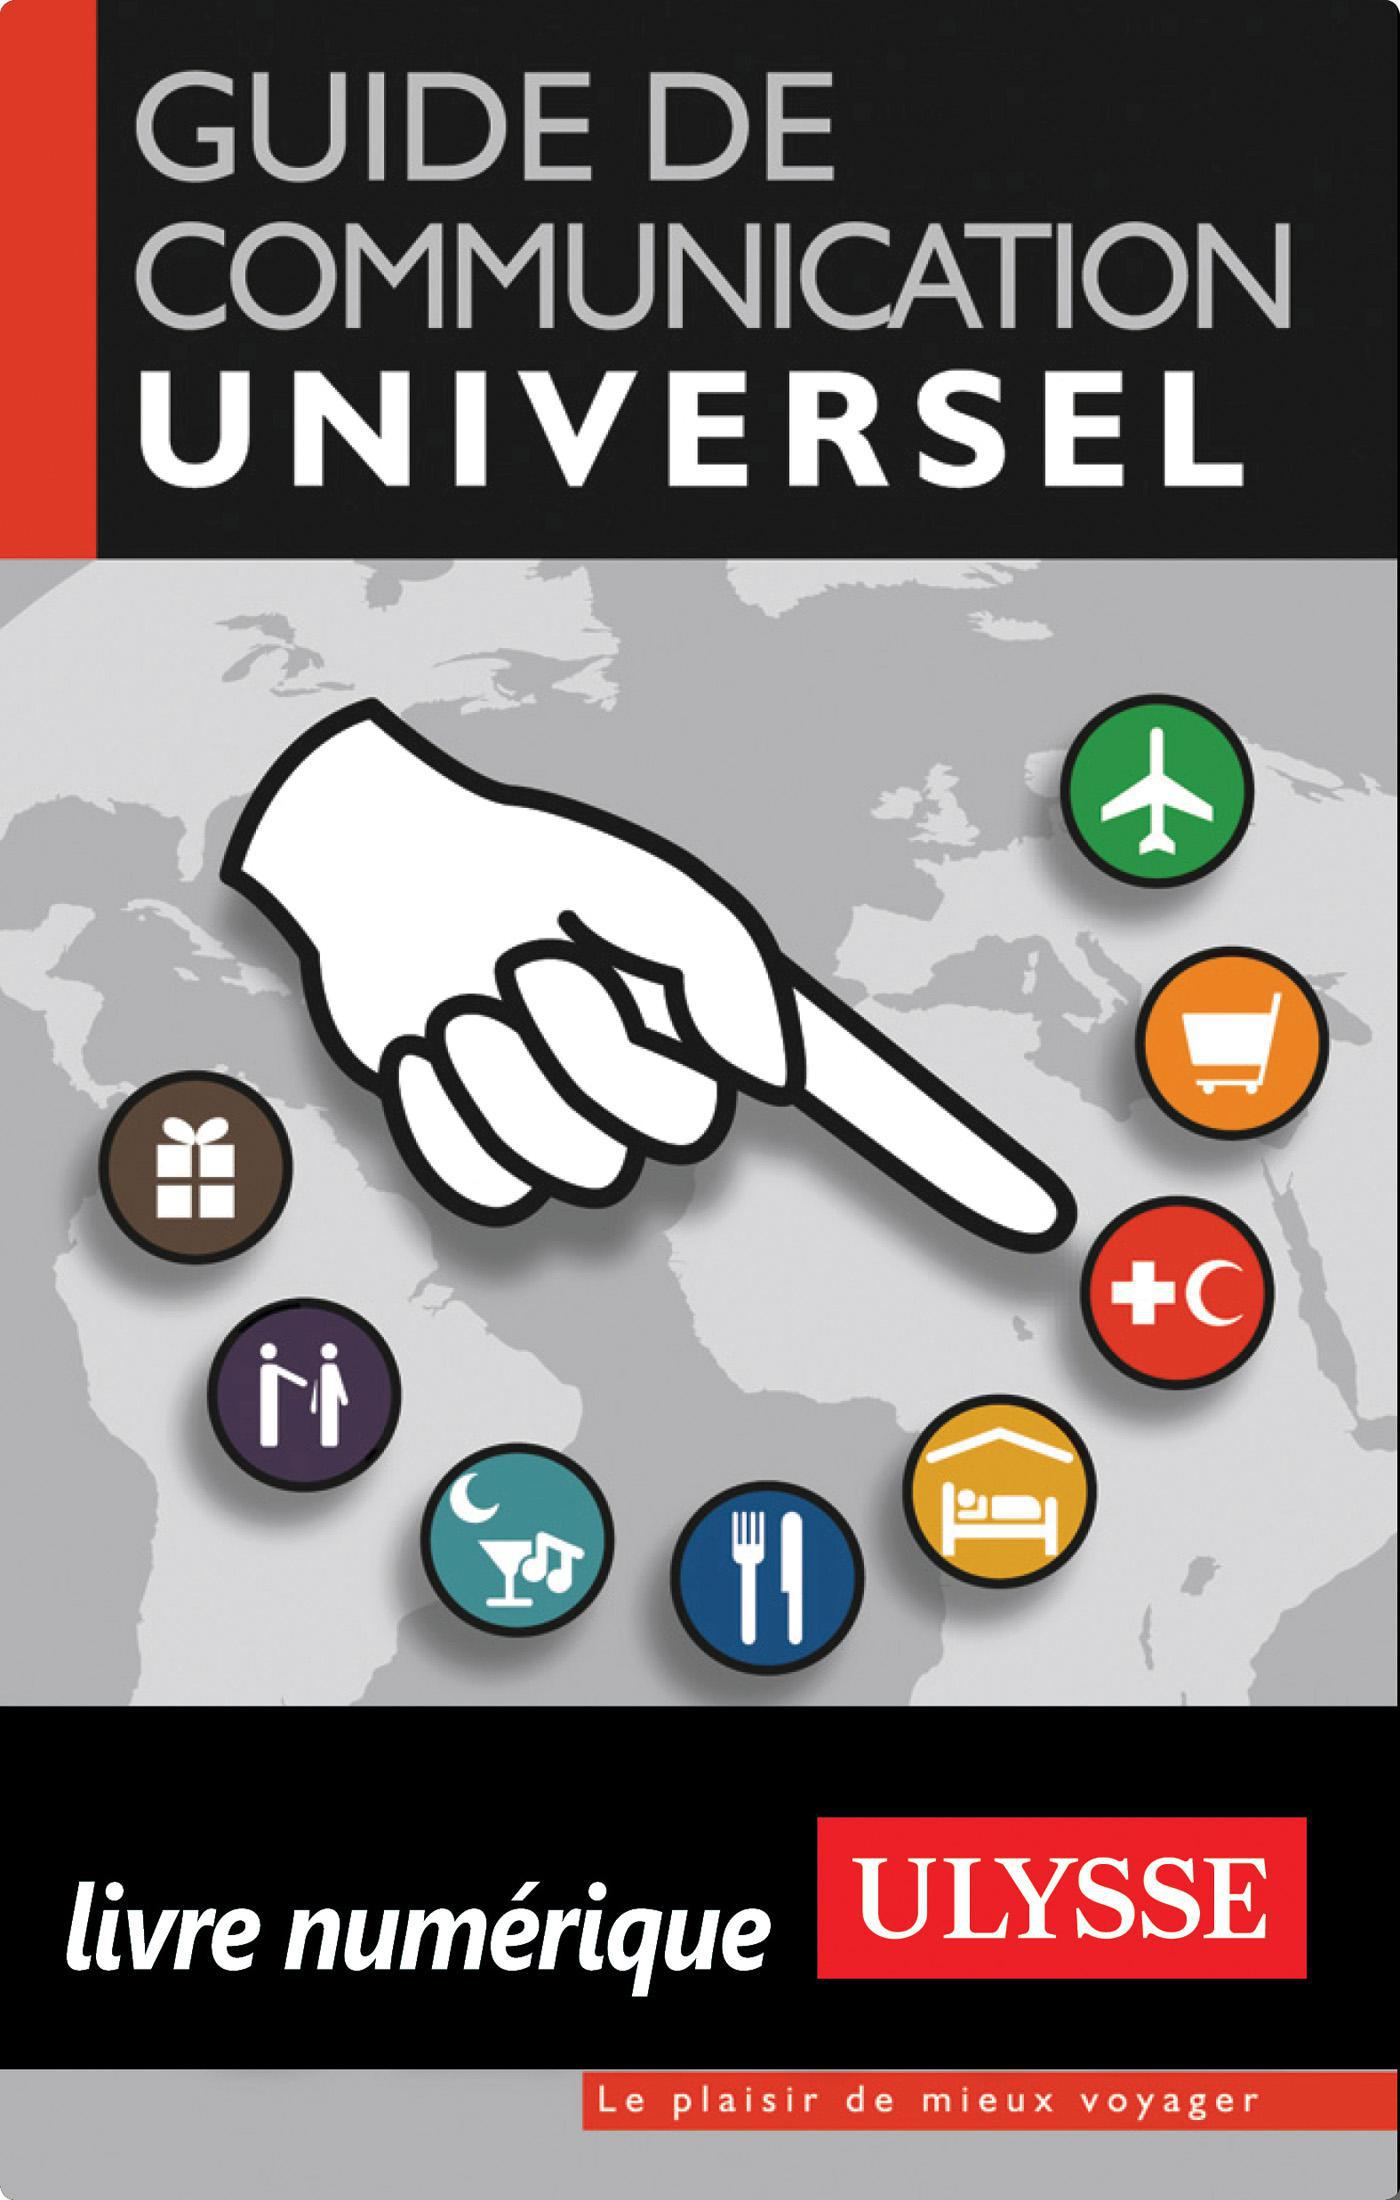 Guide de communication universel -  Janvier & lassonde